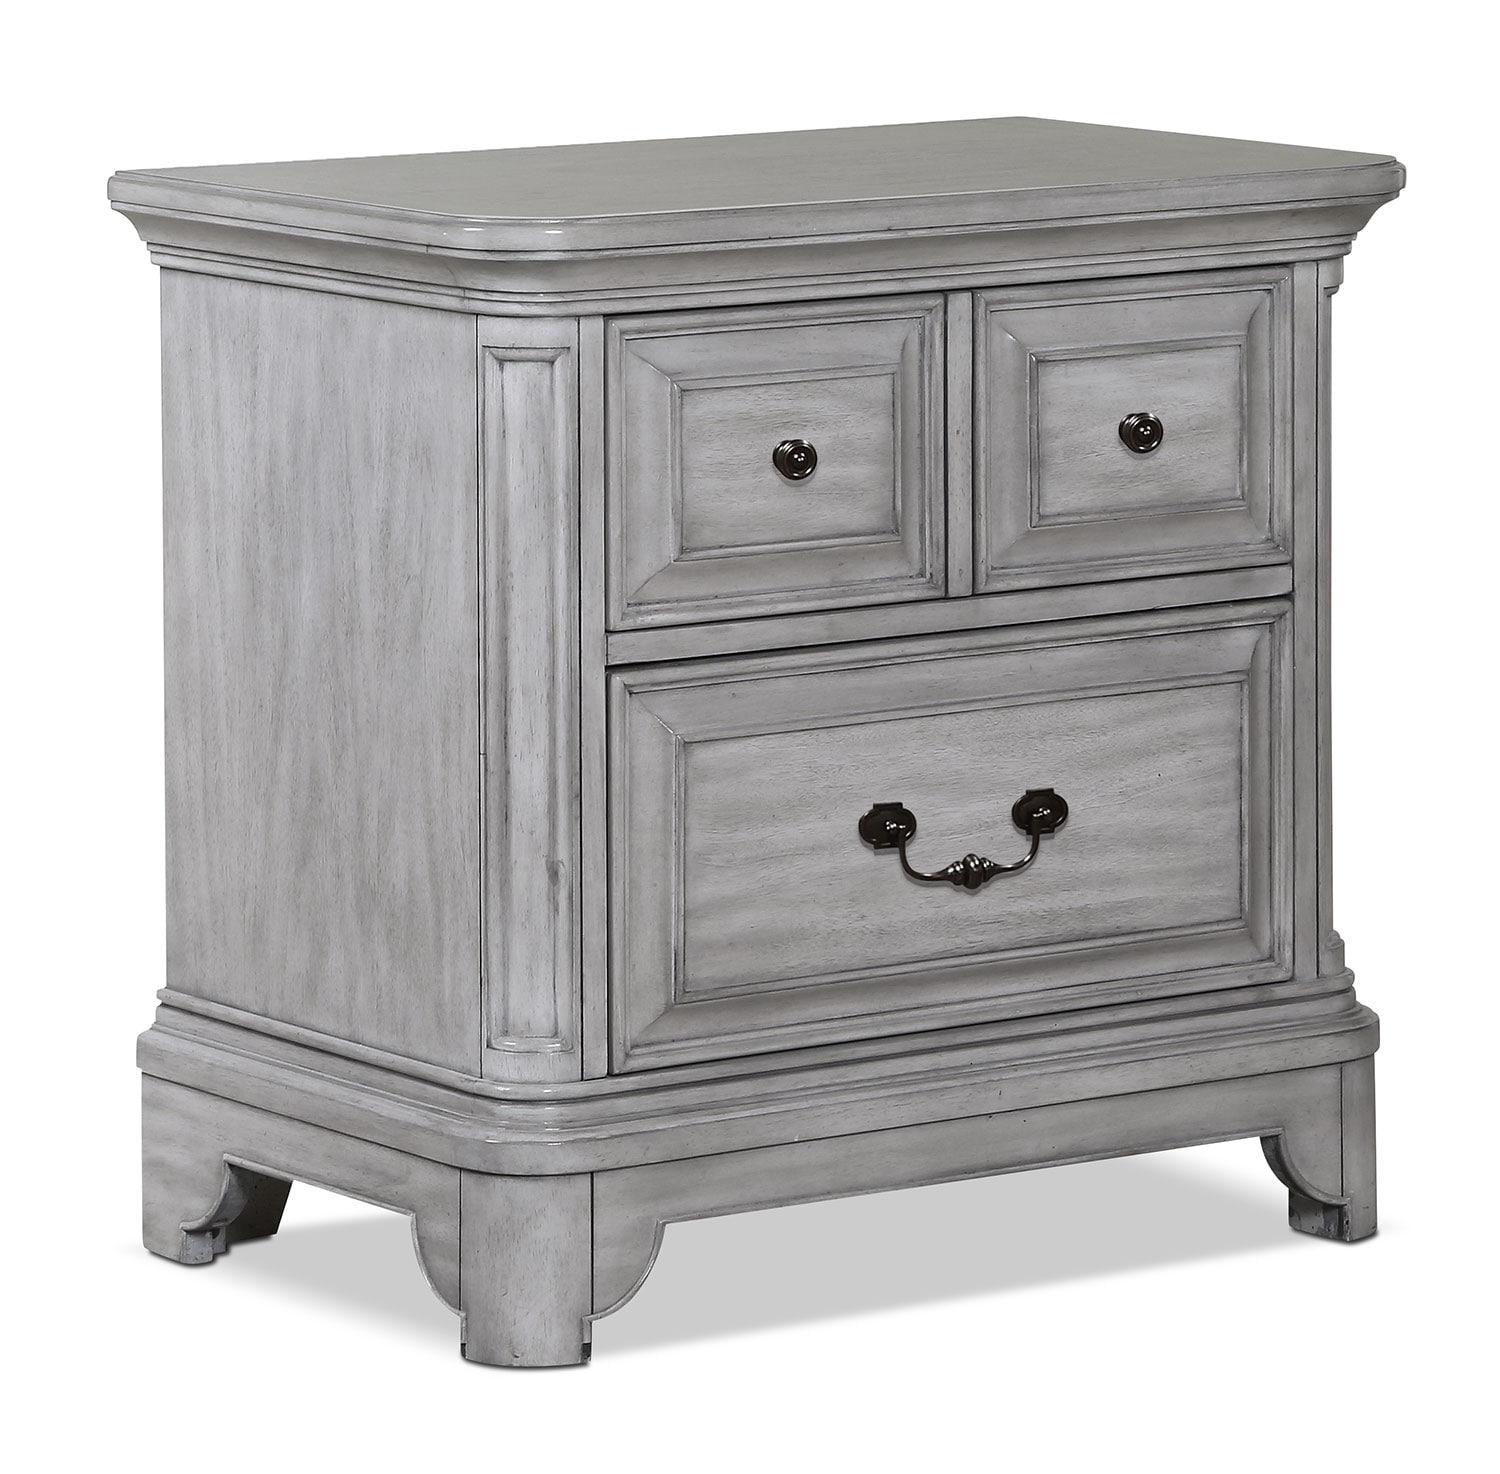 Bedroom Furniture - Tressa Night Table - Weathered Grey